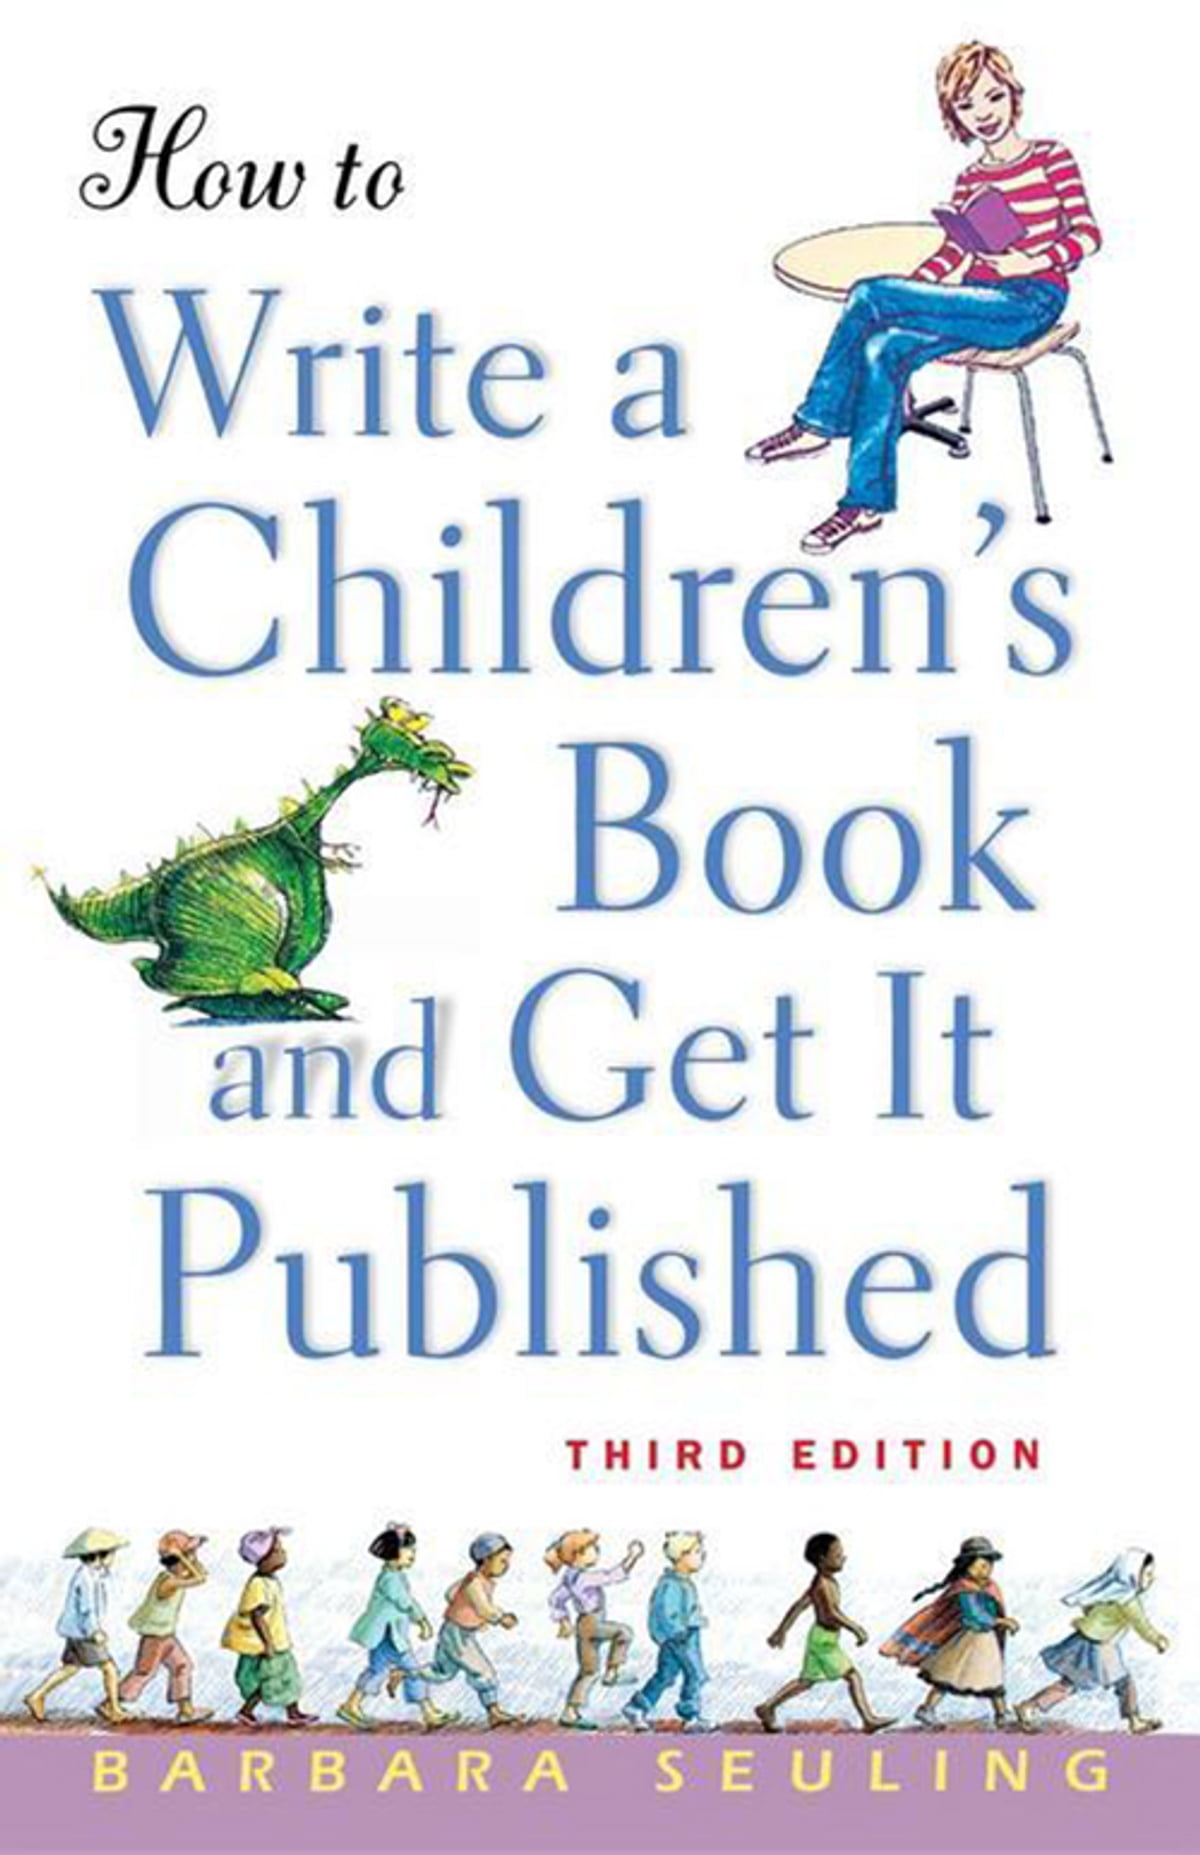 How to write children how i spent last weekend essay